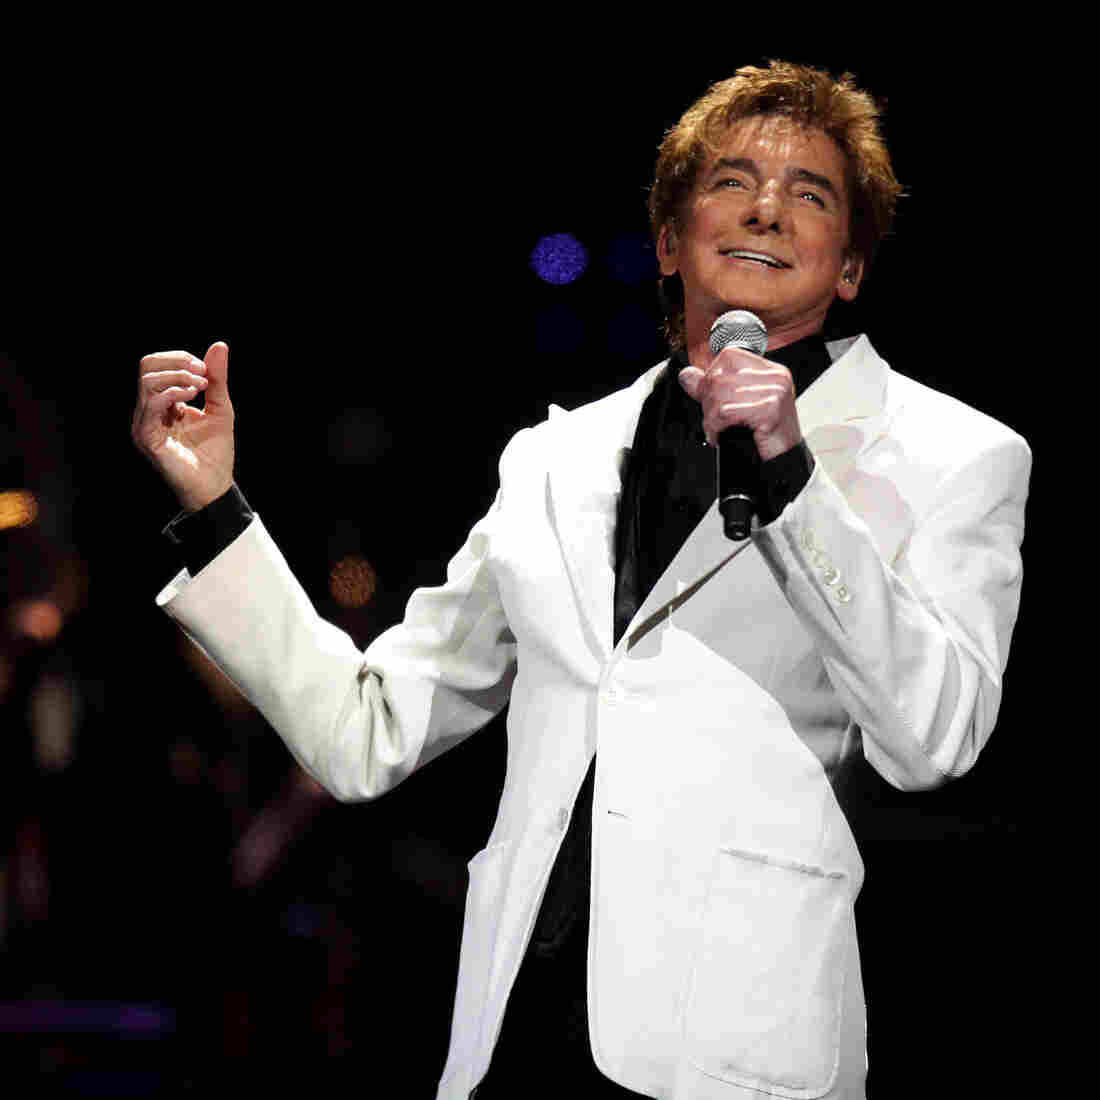 Barry Manilow On Singing Standards And His Real Job